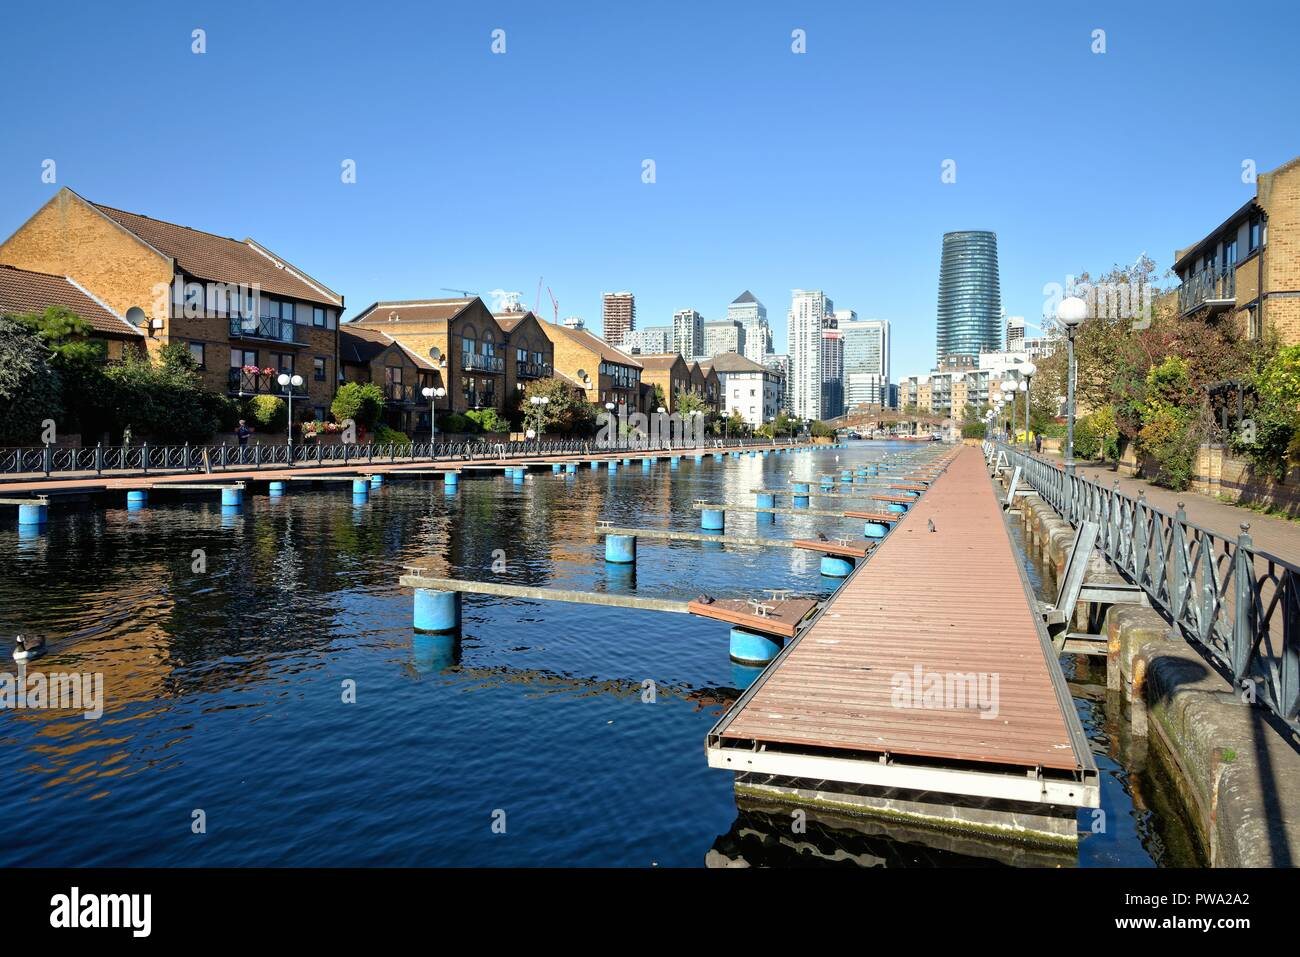 Clippers Quay, Millwall Outer Dock Canary Wharf London Docklands England UK - Stock Image